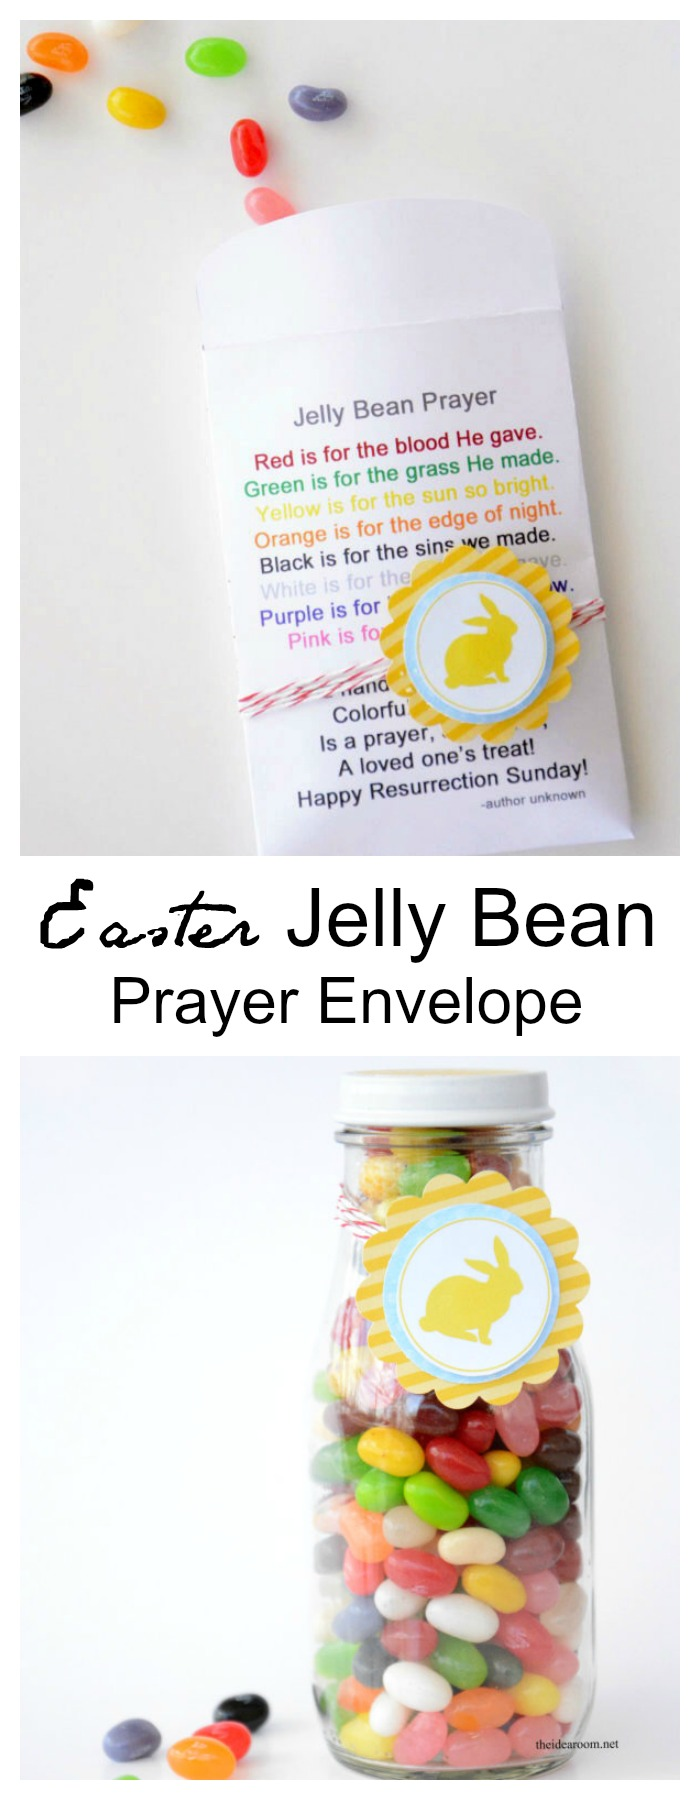 photograph relating to Jelly Bean Prayer Printable known as Easter Jelly Bean Prayer Envelopes - The Notion House